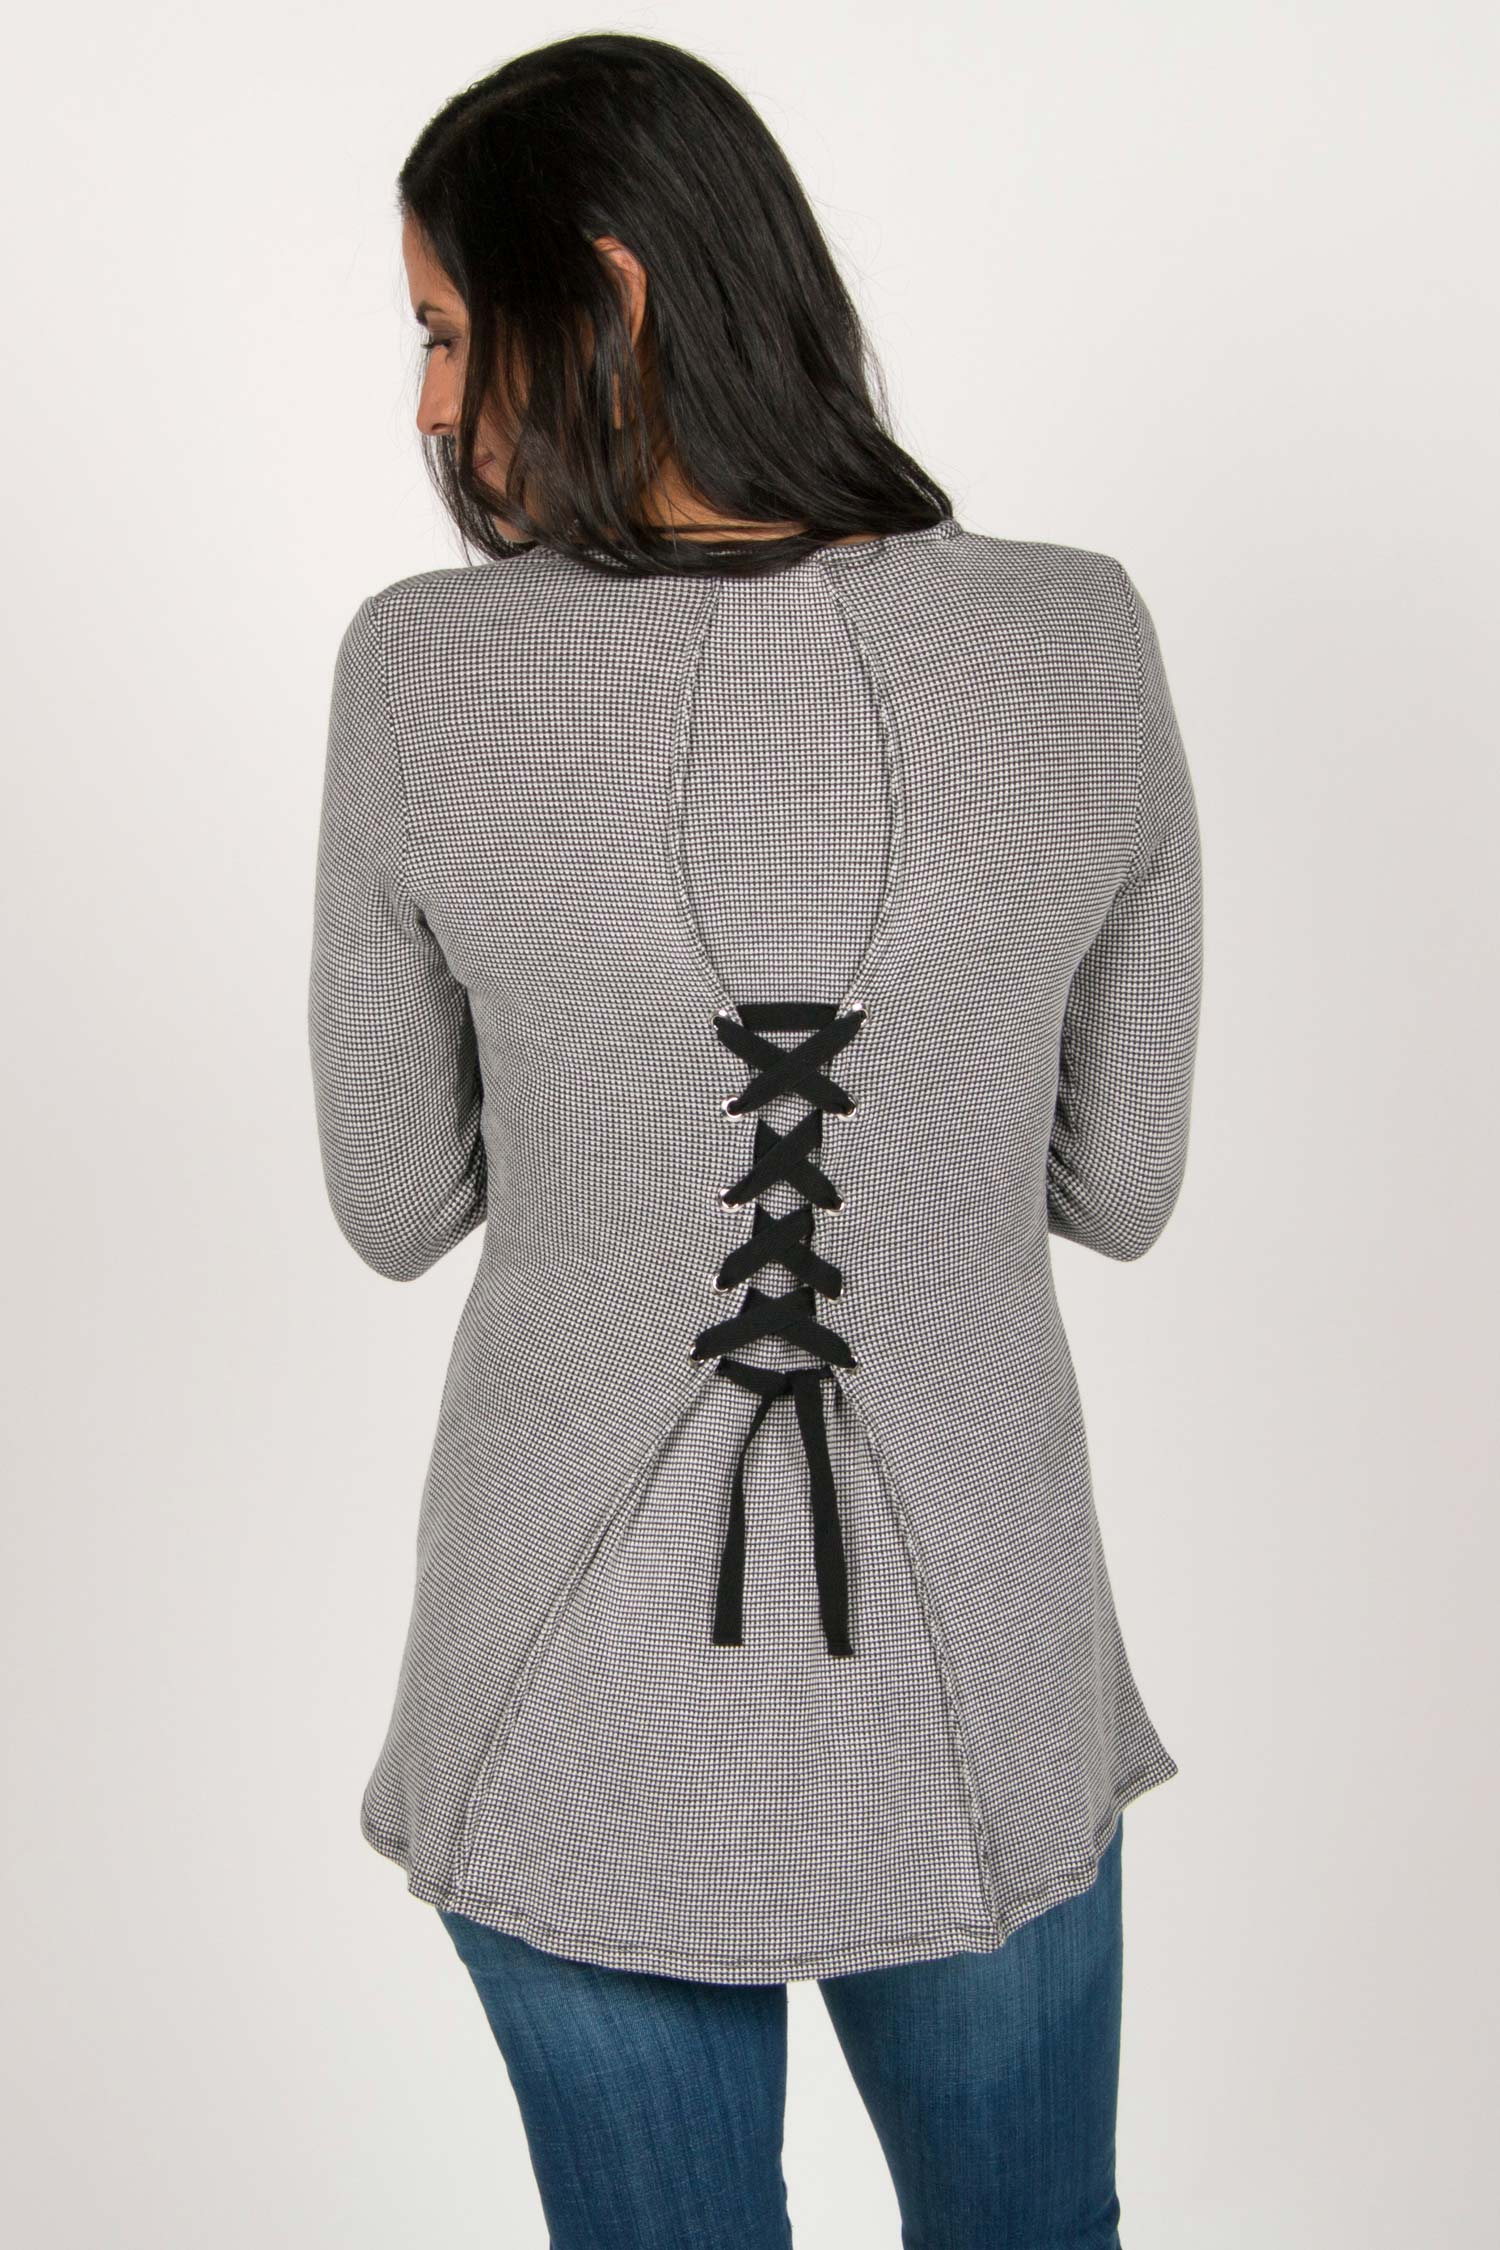 Womens Organic Cotton Top | Waffle Tie Back Pullover in Gray